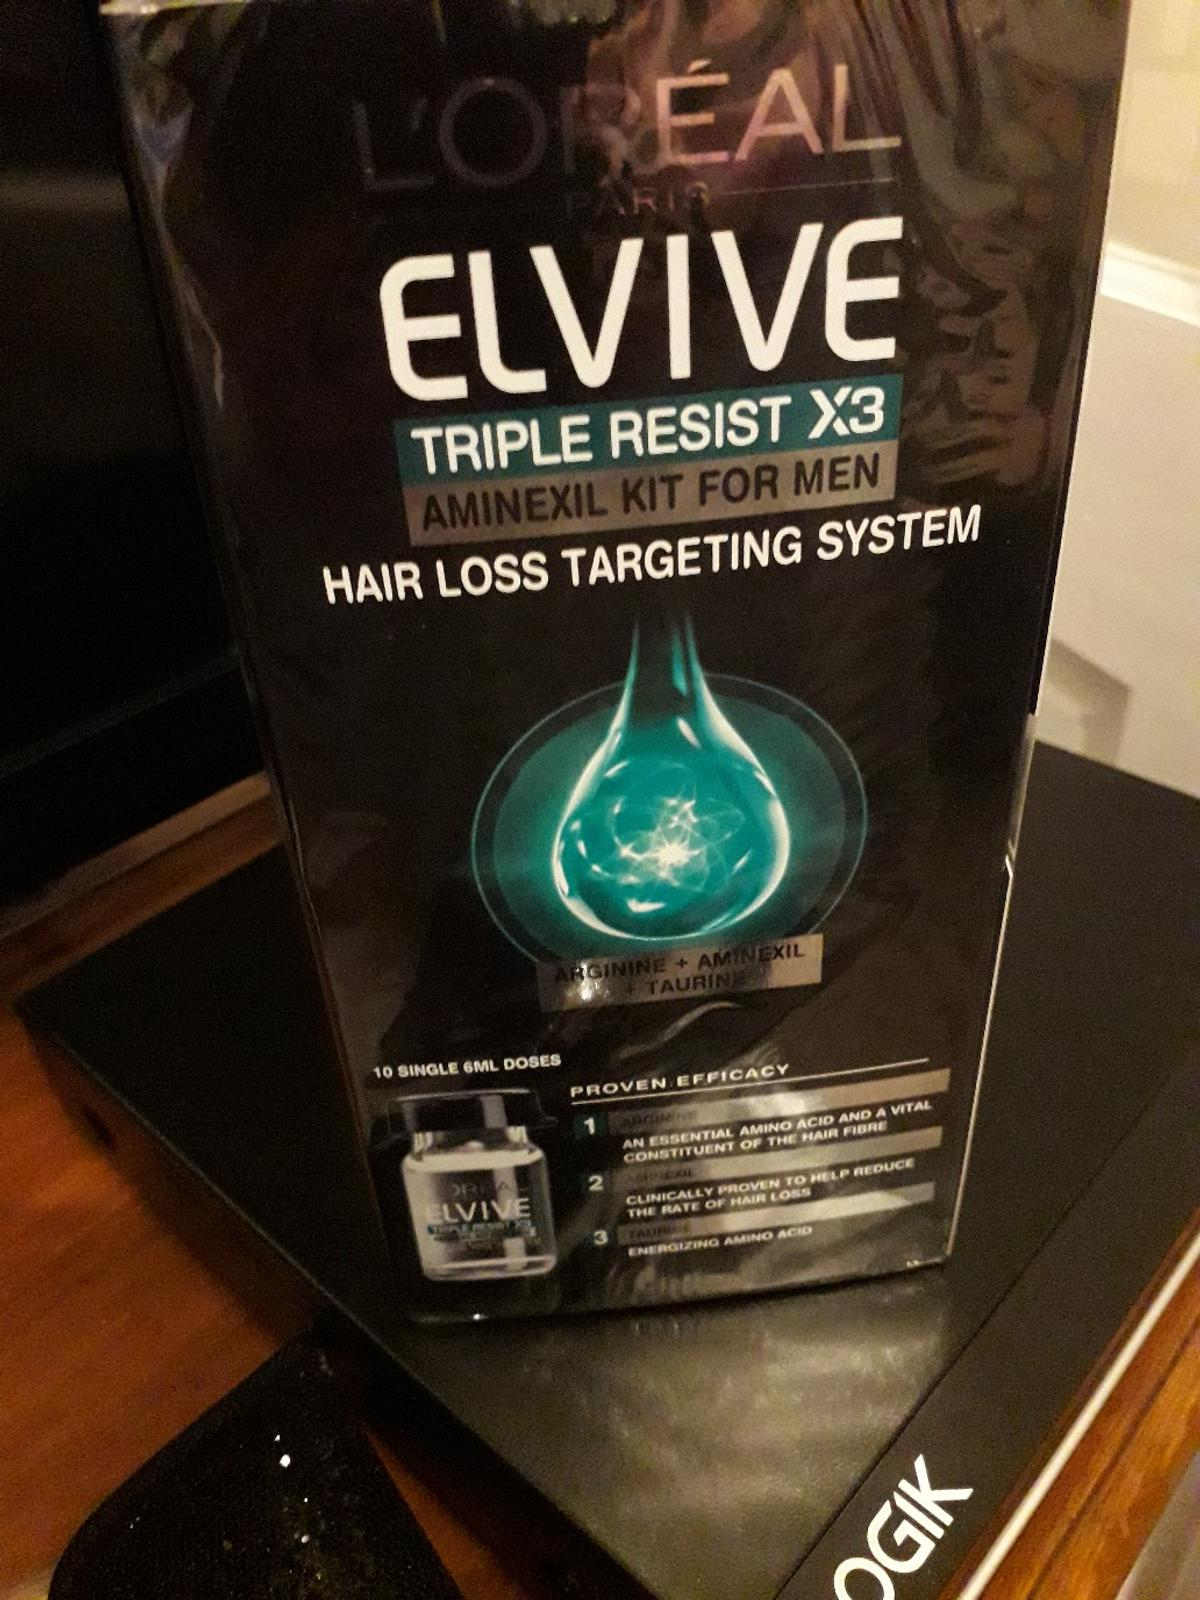 l'oreal elvive aminexil kit for men hair loss system there are three of these collection only (£10) for all three